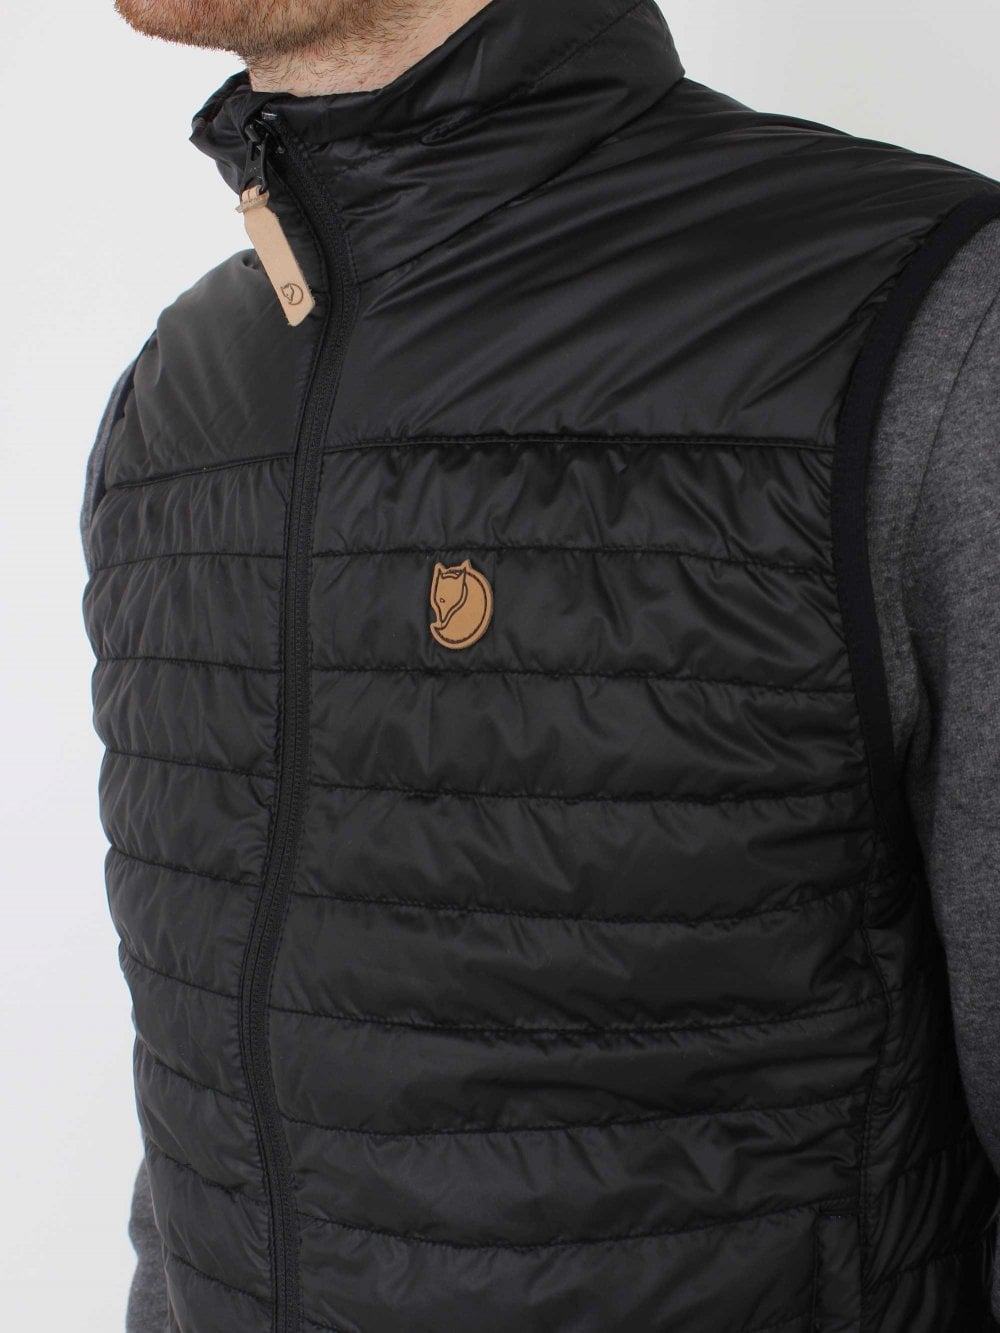 new high high quality new arrivals Abisko Padded Vest - Black